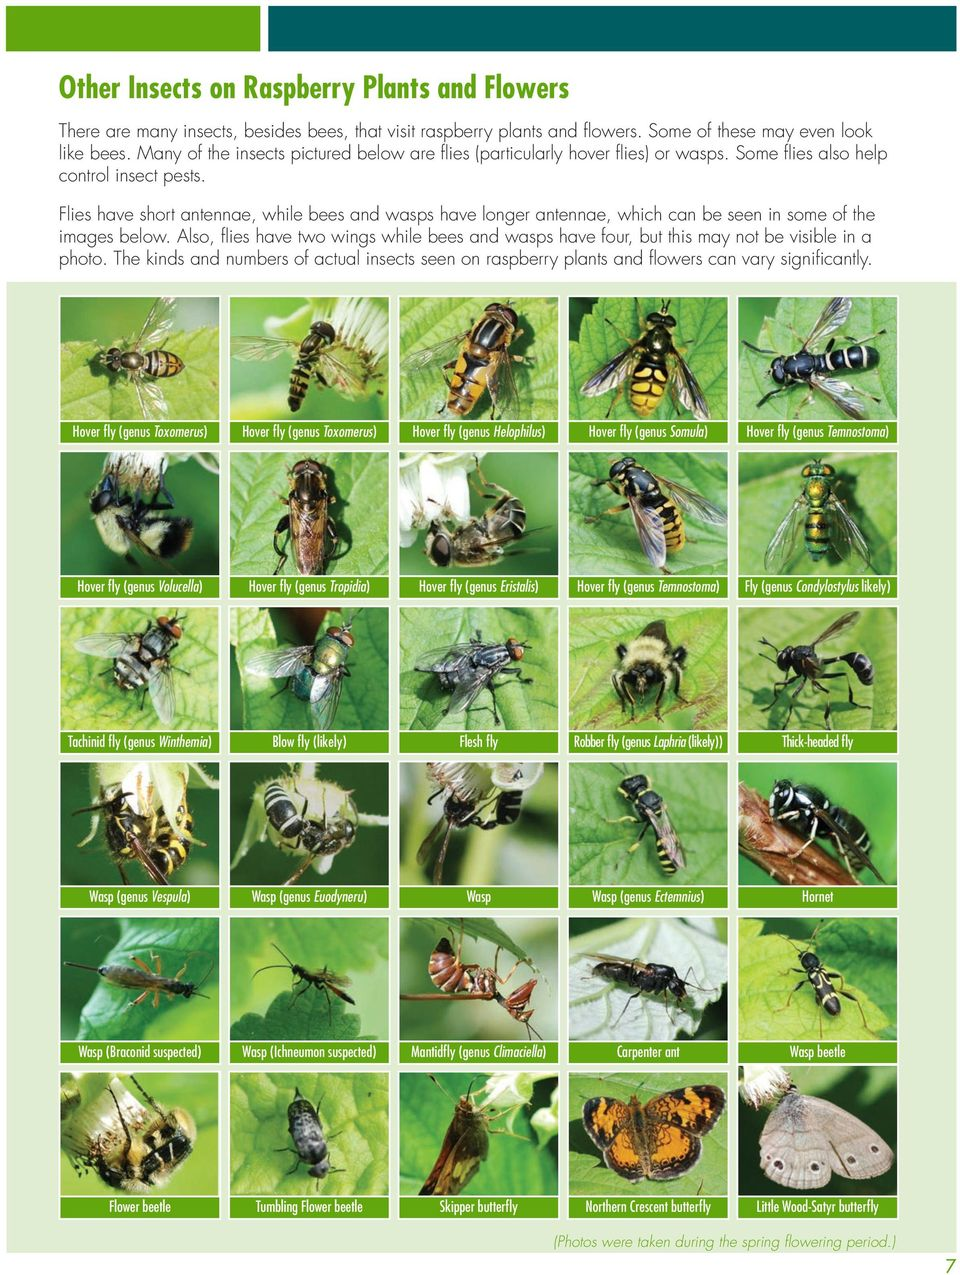 Flies have short antennae, while bees and wasps have longer antennae, which can be seen in some of the images below.